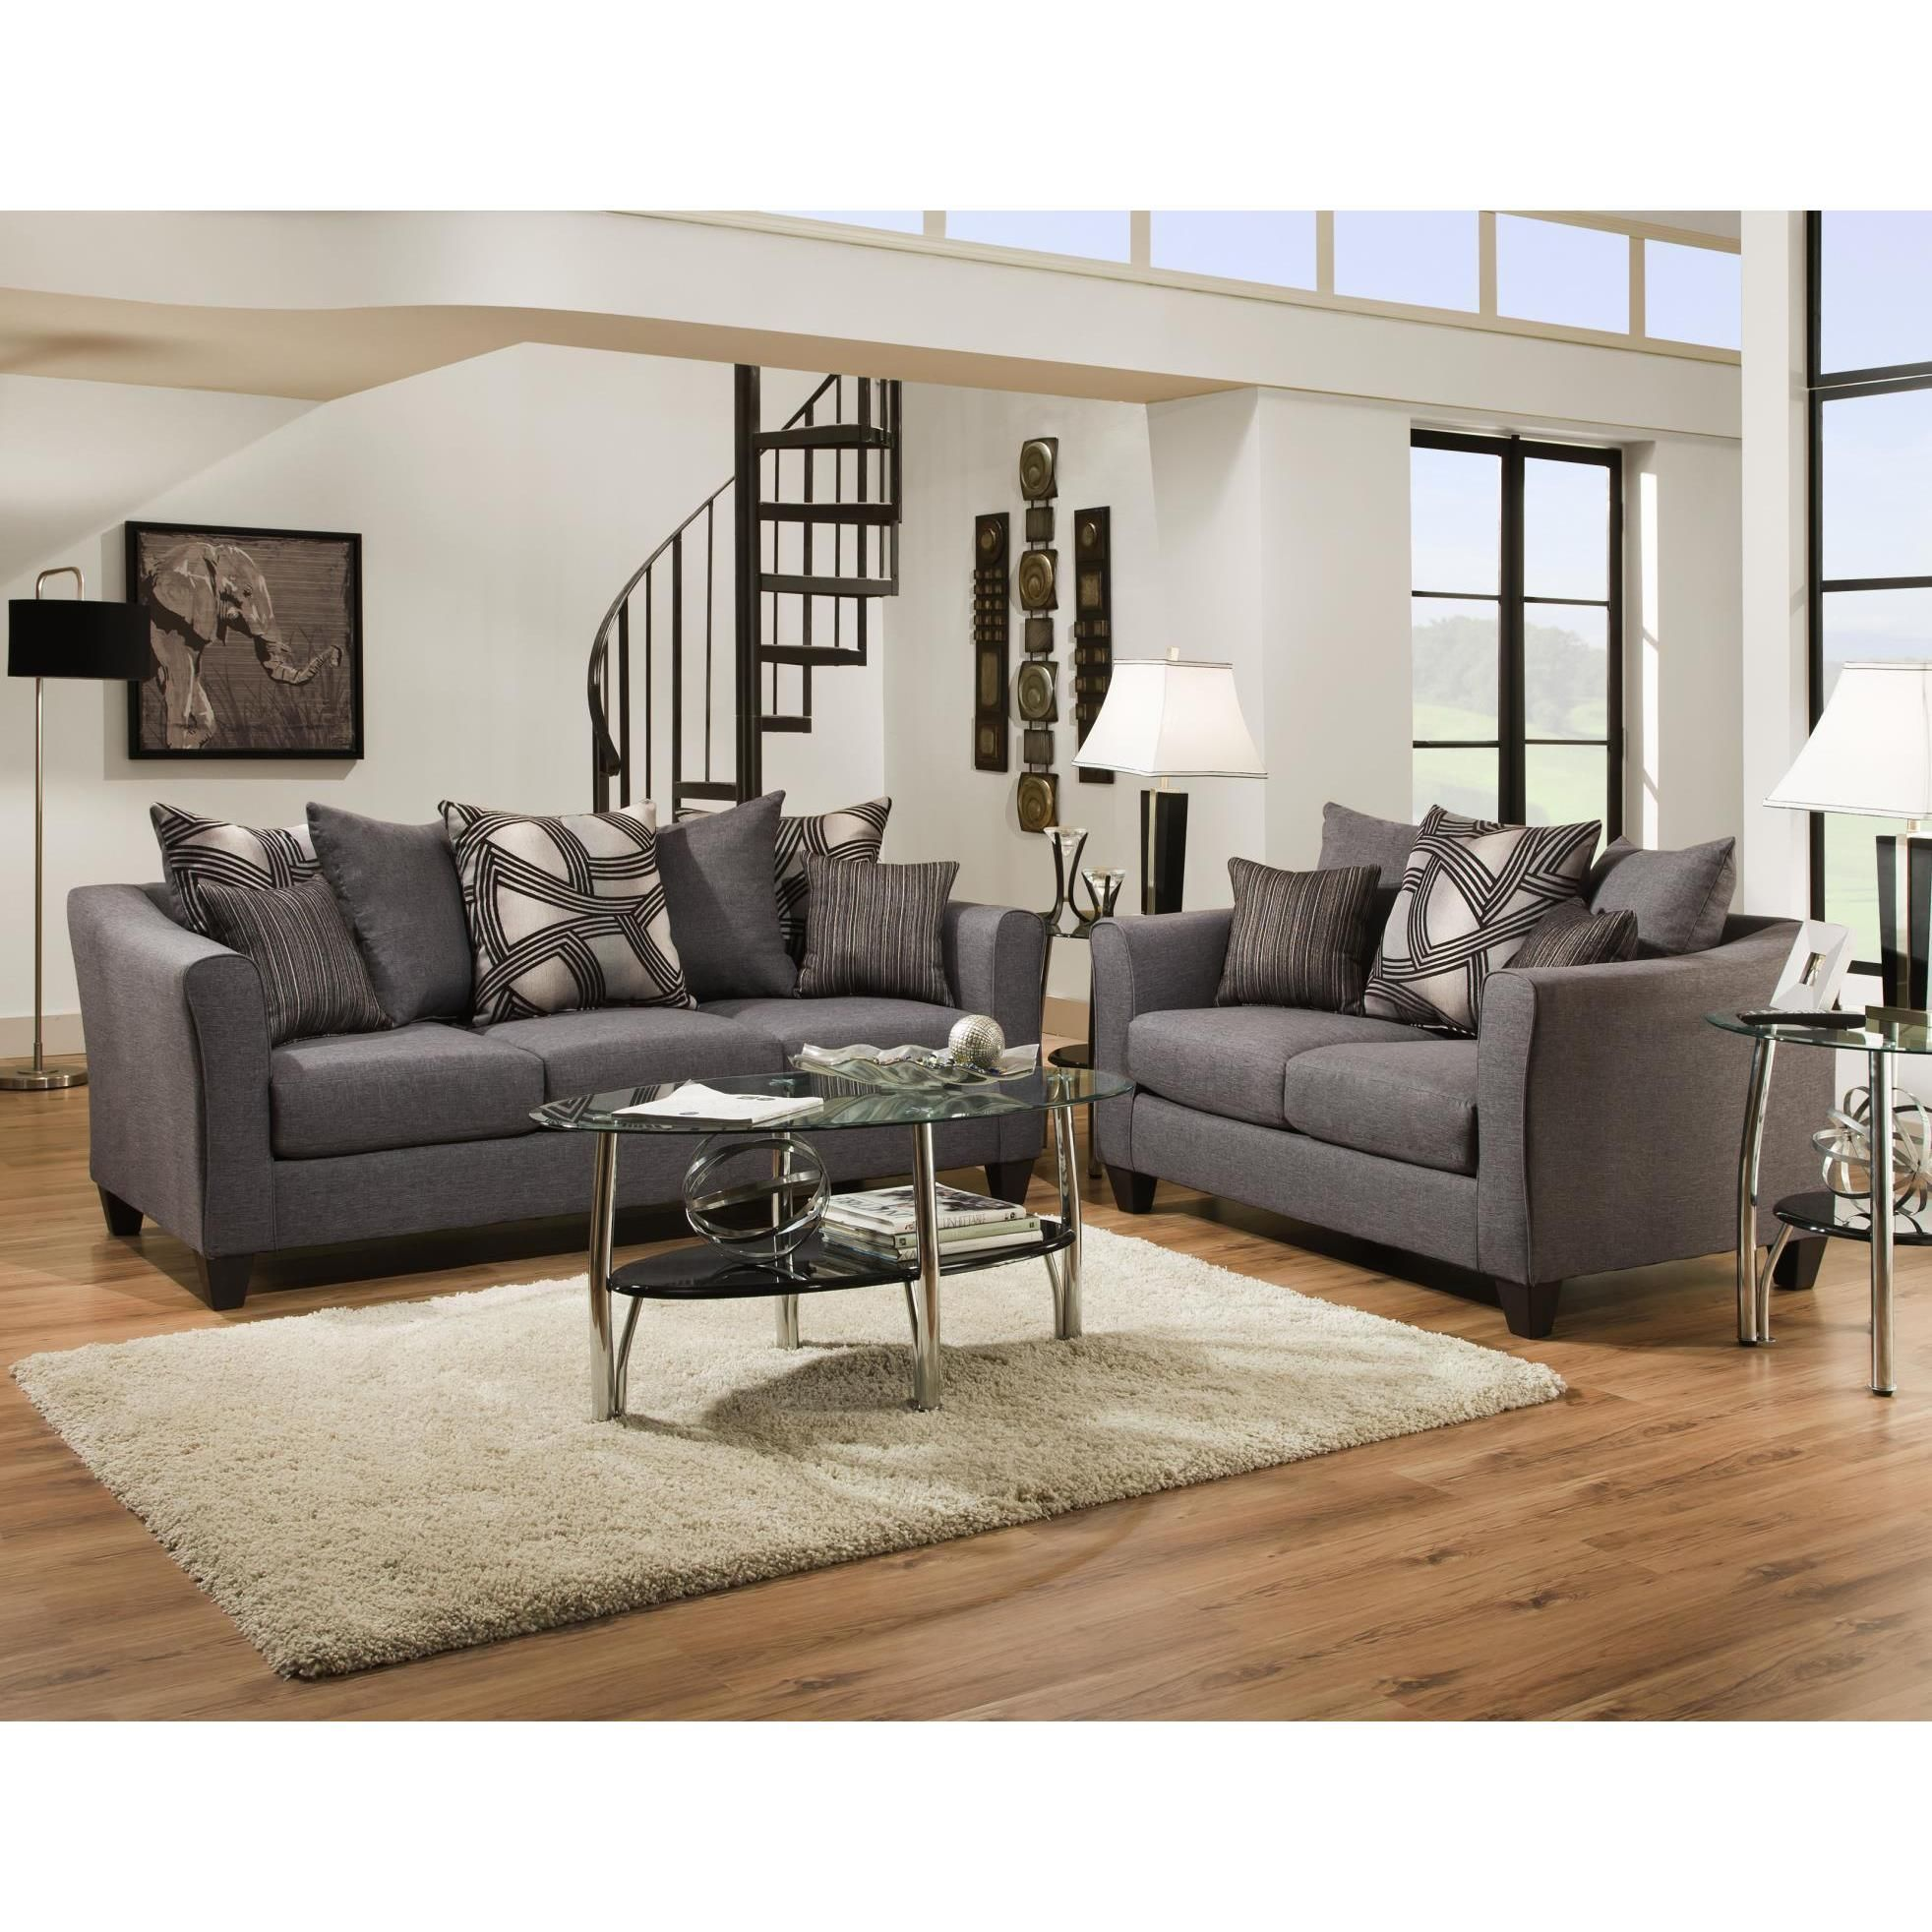 sofa and loveseat set up beds phoenix az area curl comfortably on this which features a sturdy hardwood solid frame high density padding supported by spring cushioning